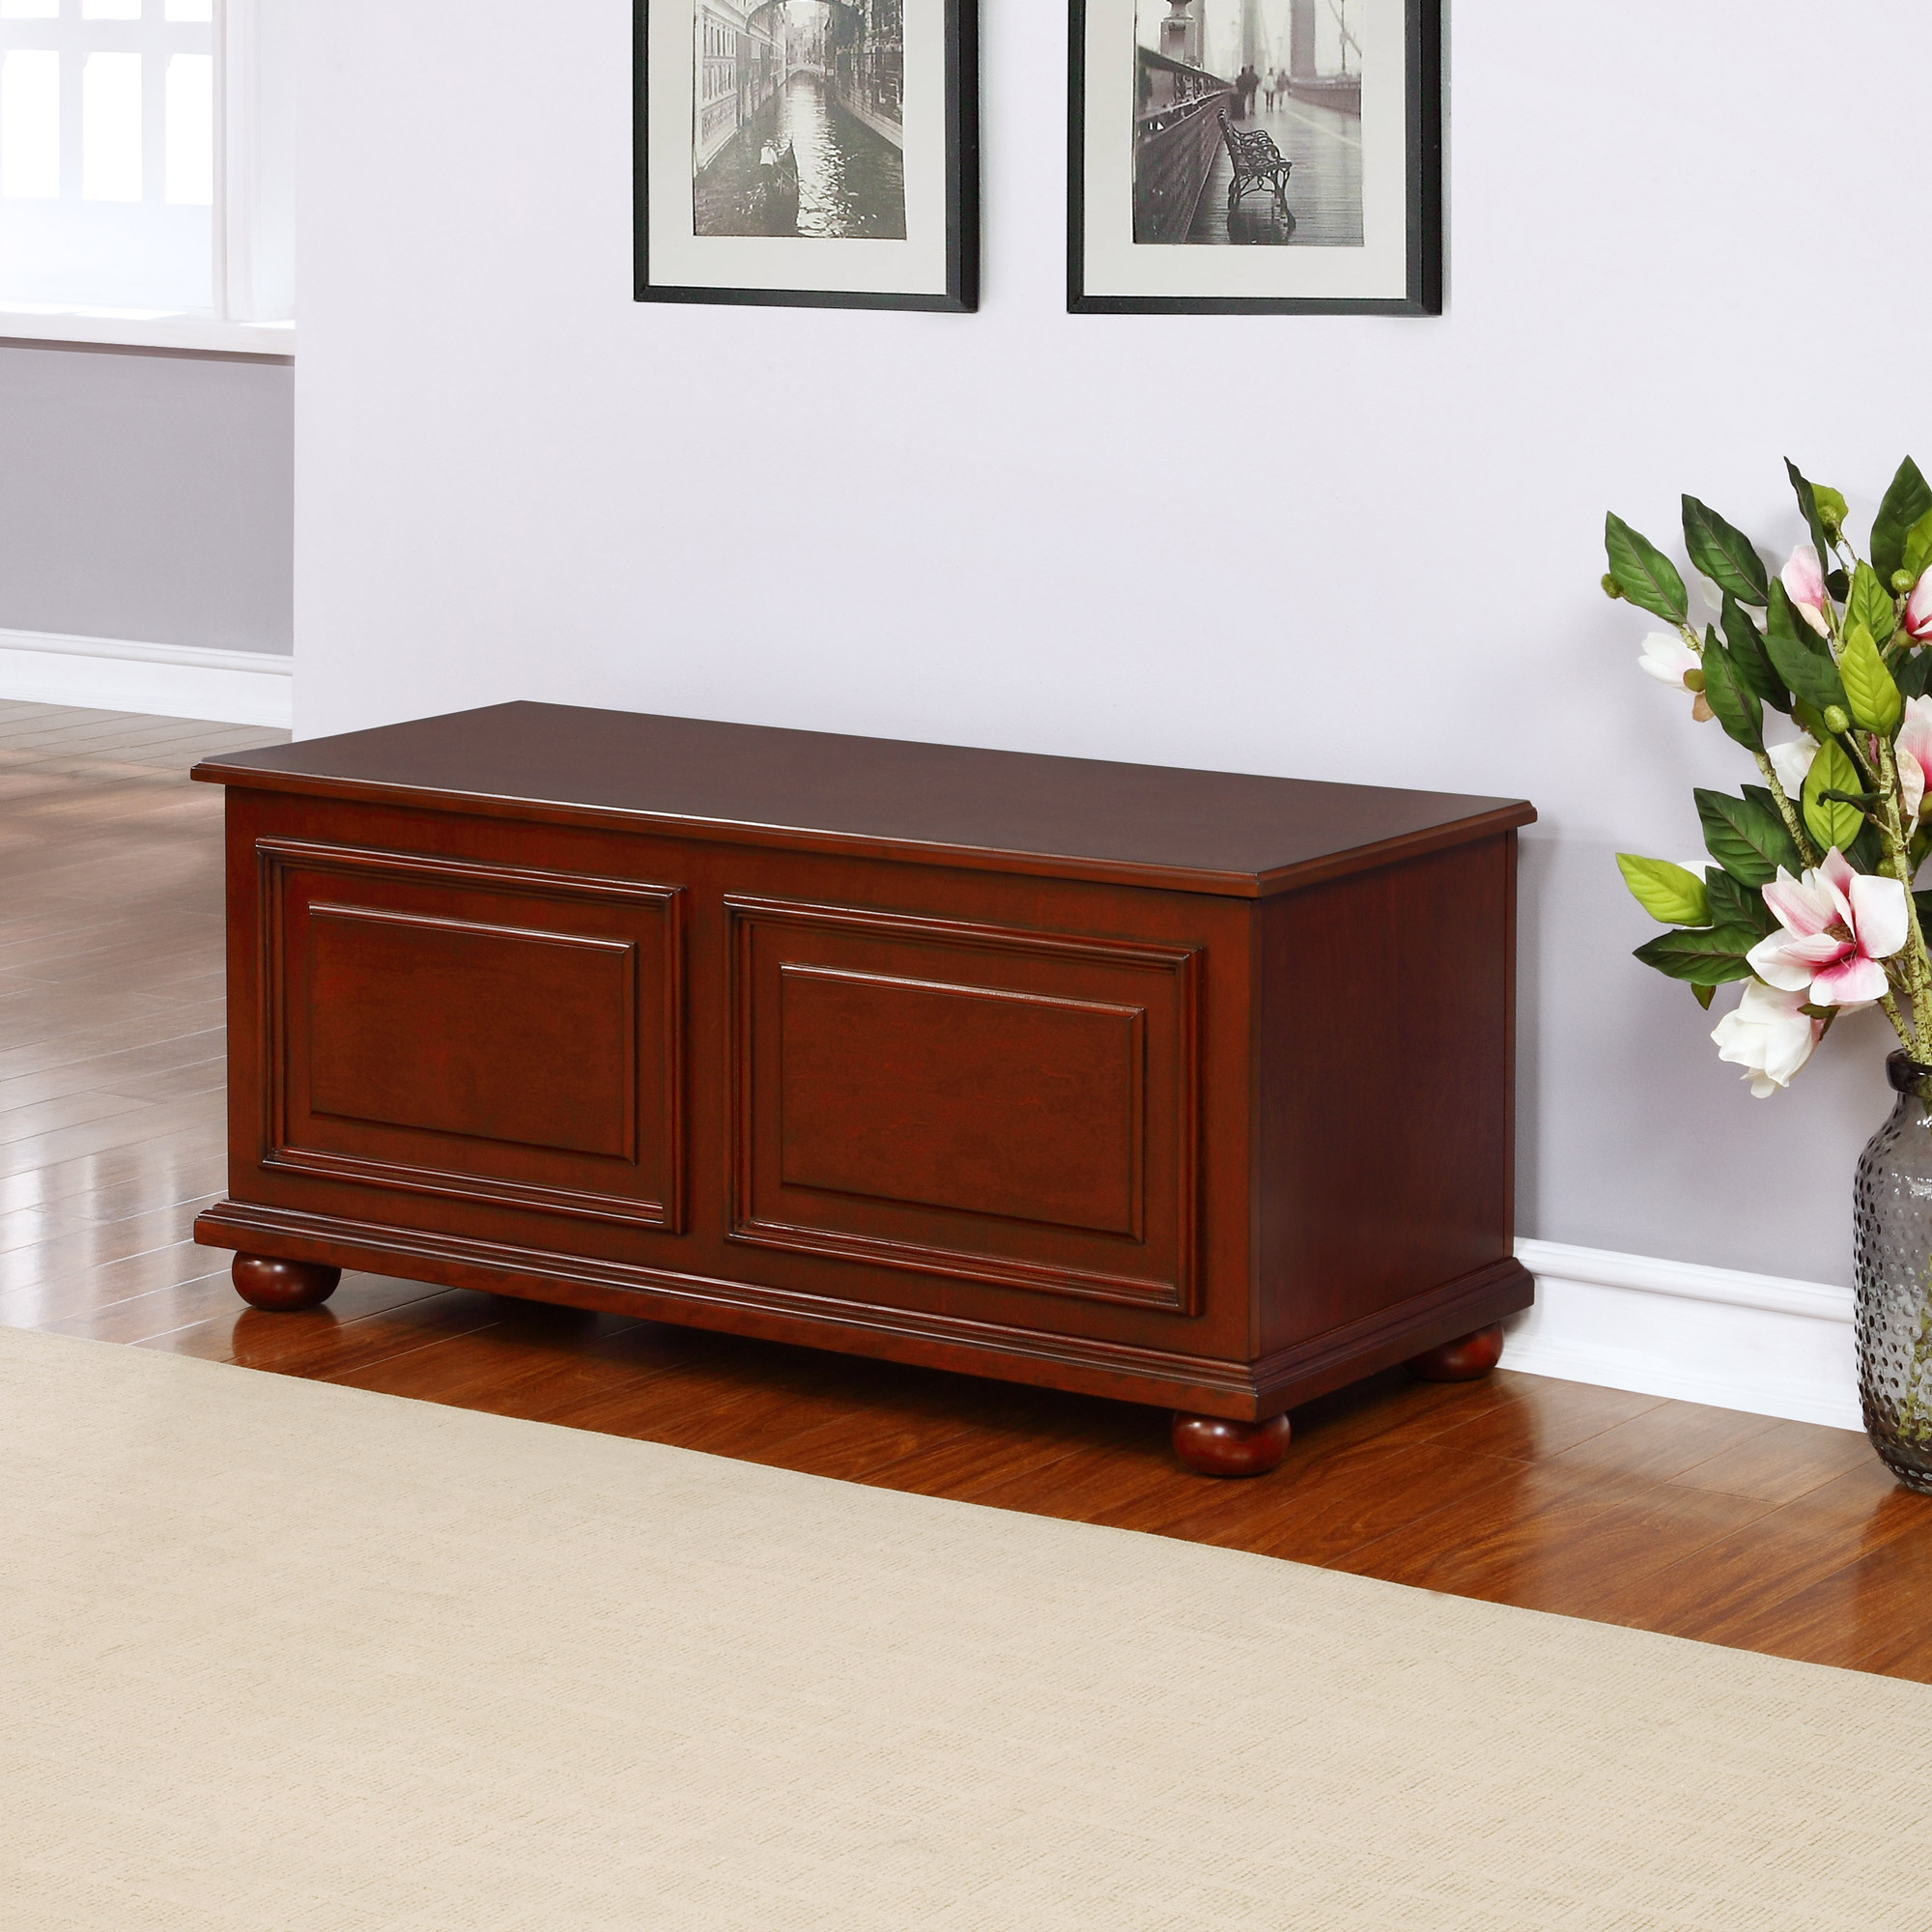 Powell Furniture Chadwick Traditional Cedar Storage Chest in Rich Cherry Finish